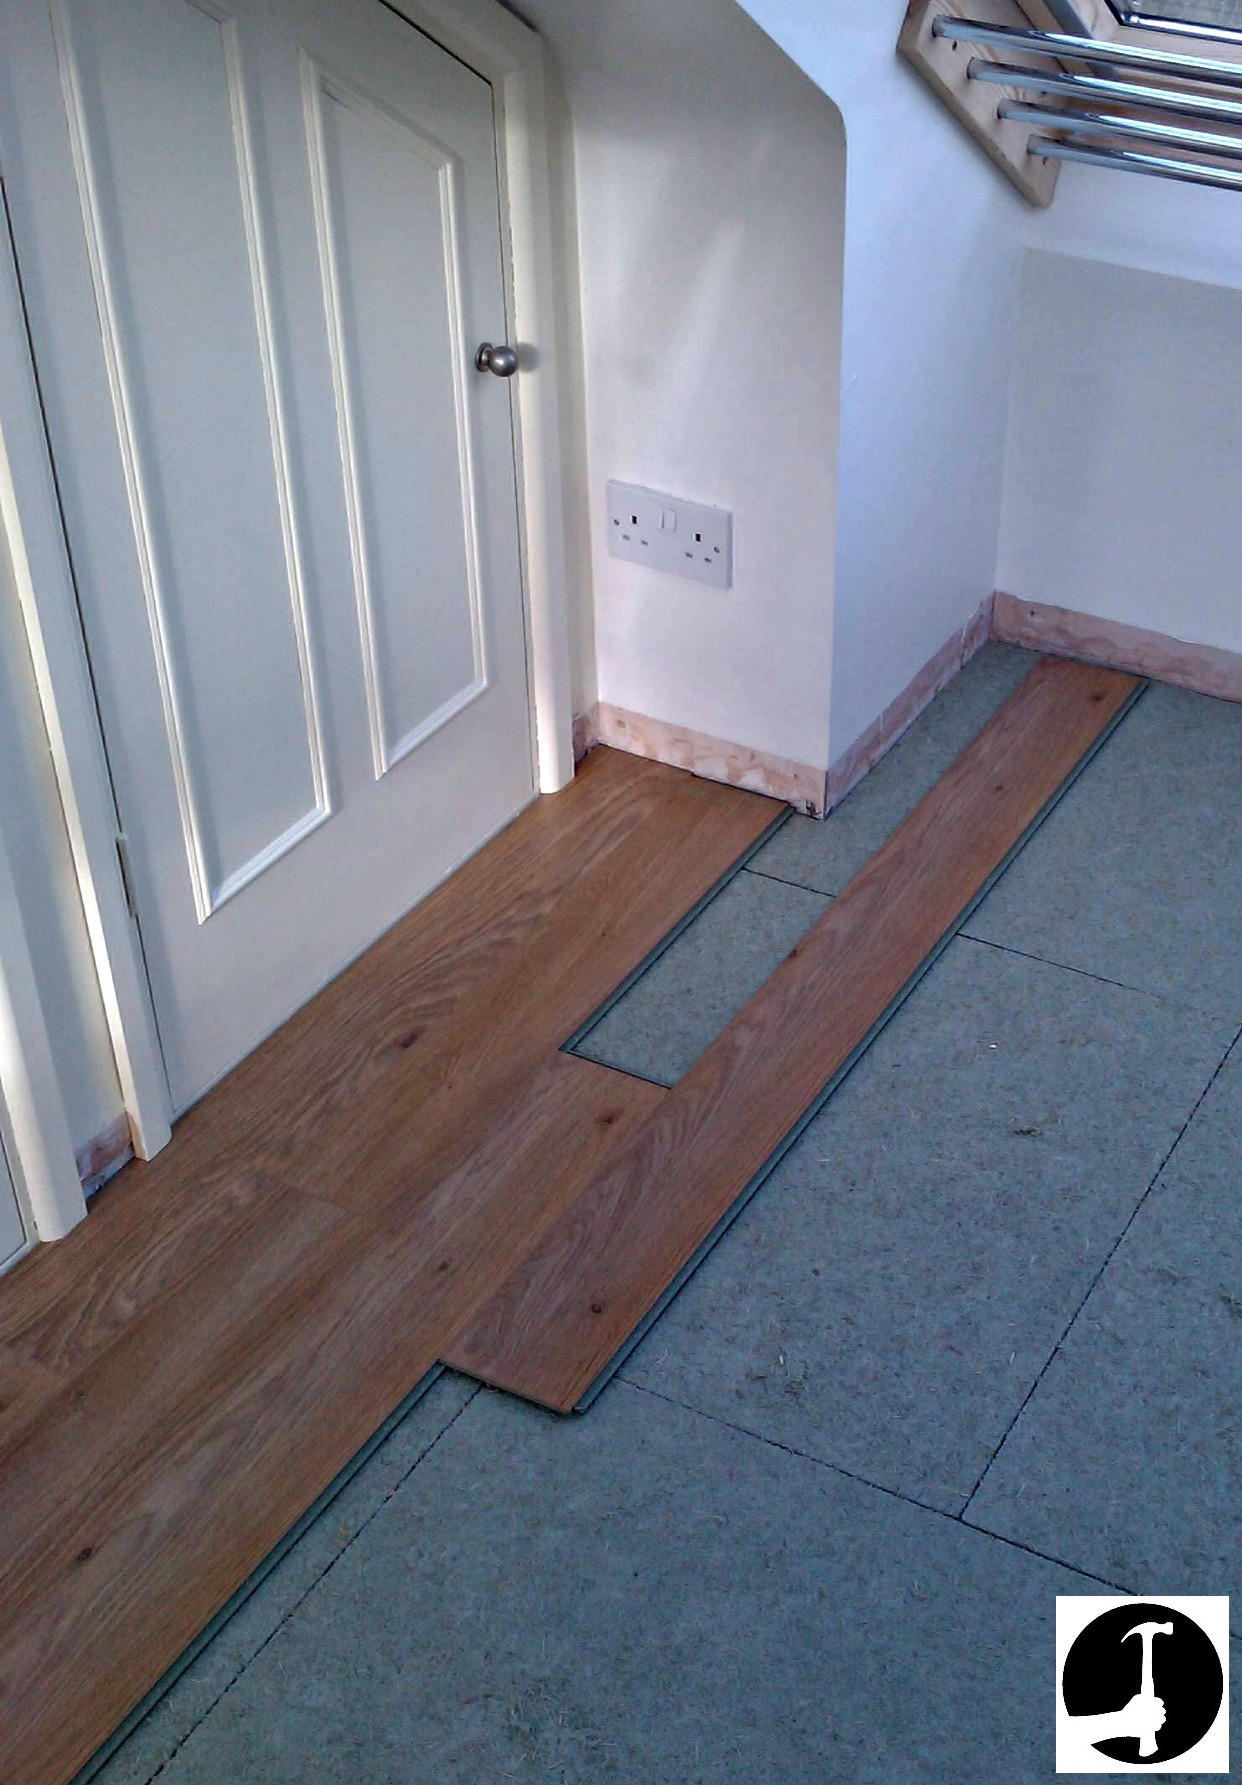 22 Amazing Hardwood Flooring On Concrete Floor 2021 free download hardwood flooring on concrete floor of how to install laminate flooring with ease glued glue less systems regarding setting out laminate flooring